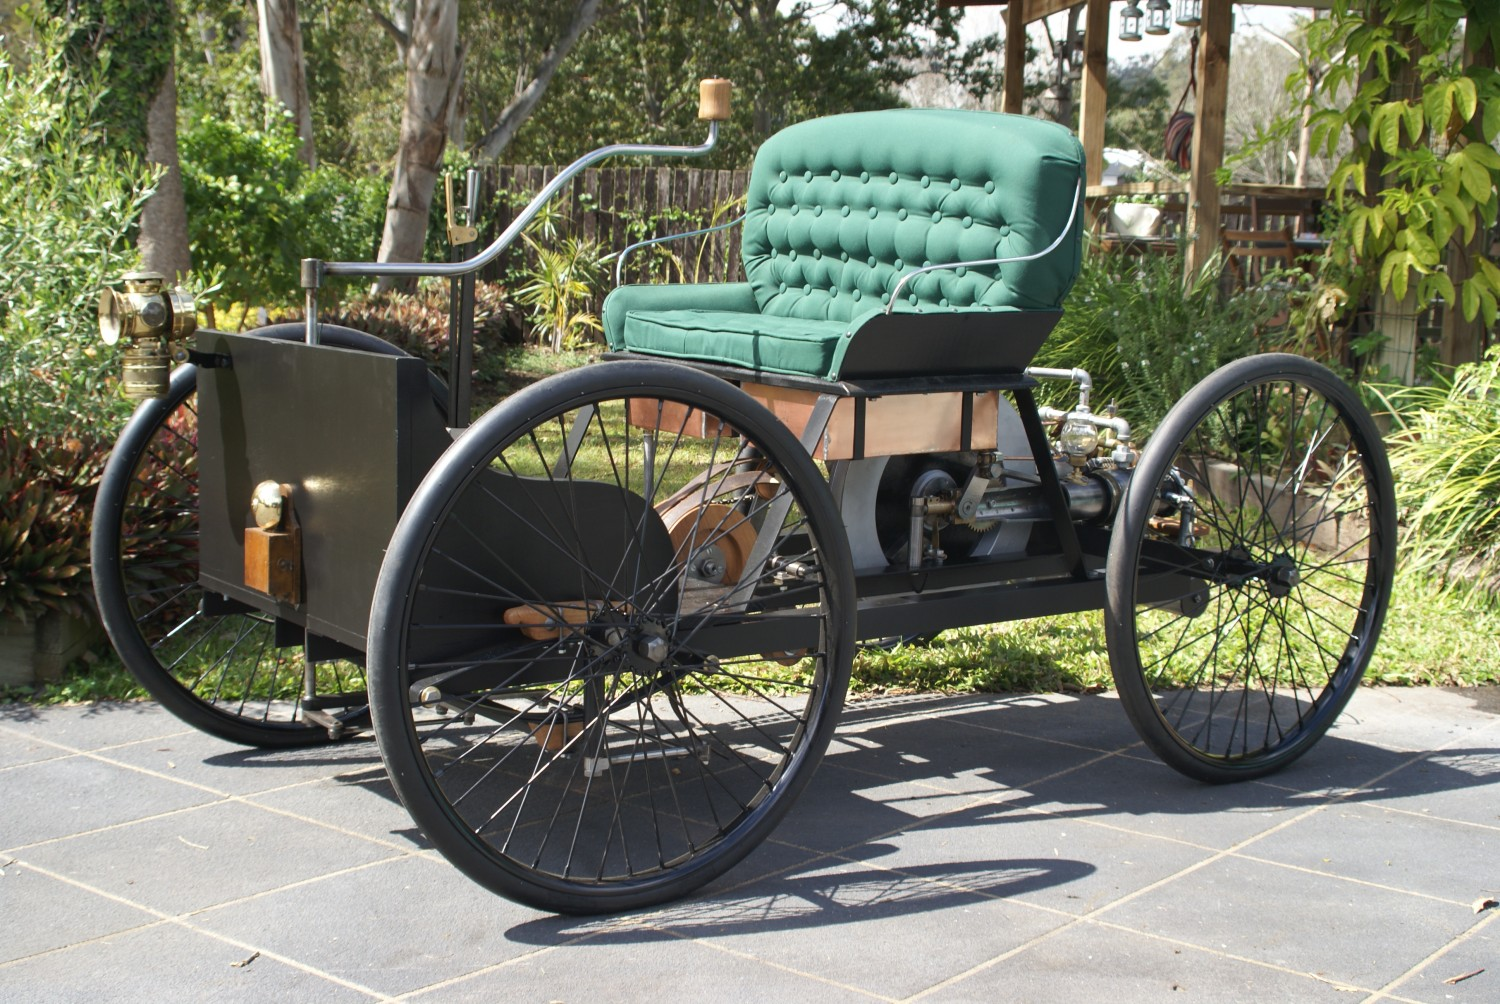 1896 Ford Quadricycle (replica)